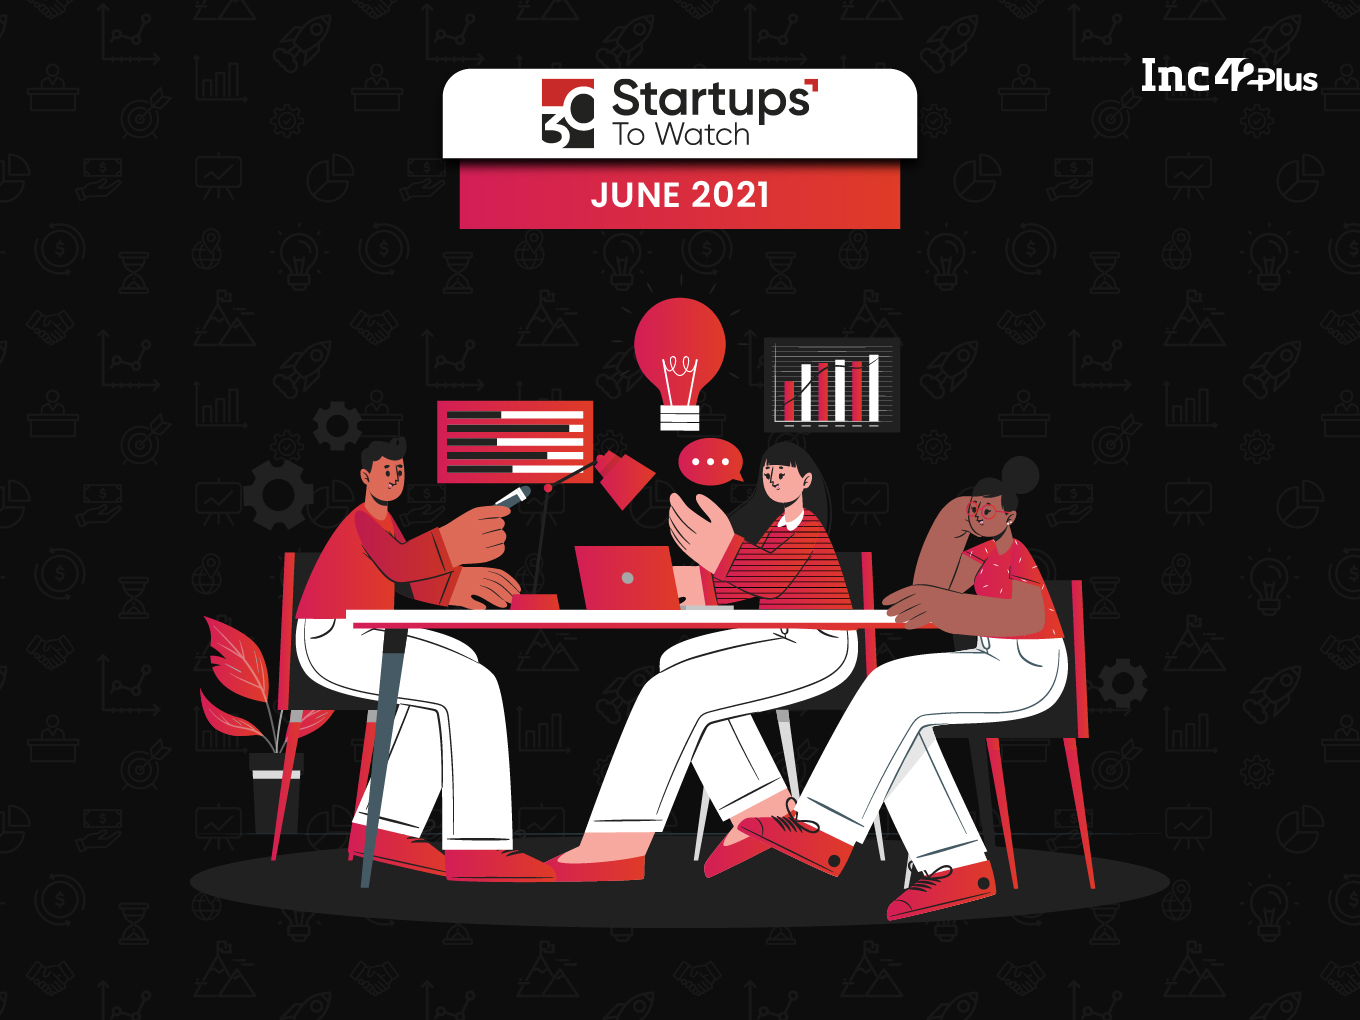 30 Startups To Watch: The Startups That Caught Our Eye In June 2021 [D2C Edition]